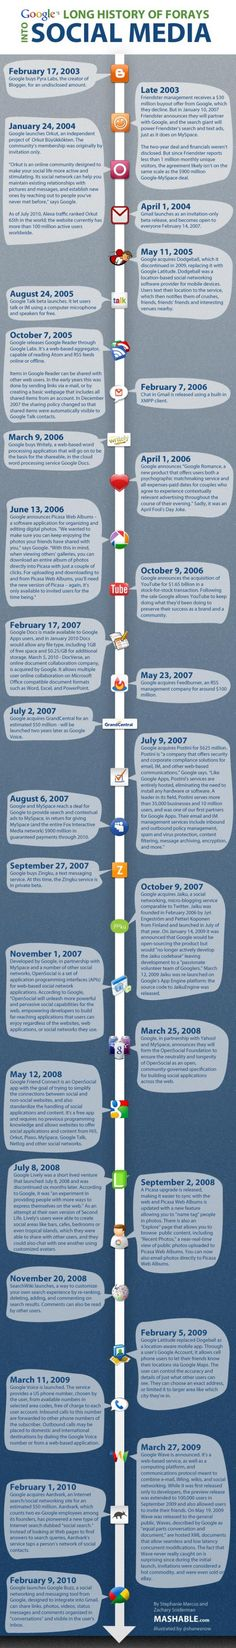 Google's long history of forays into social media...